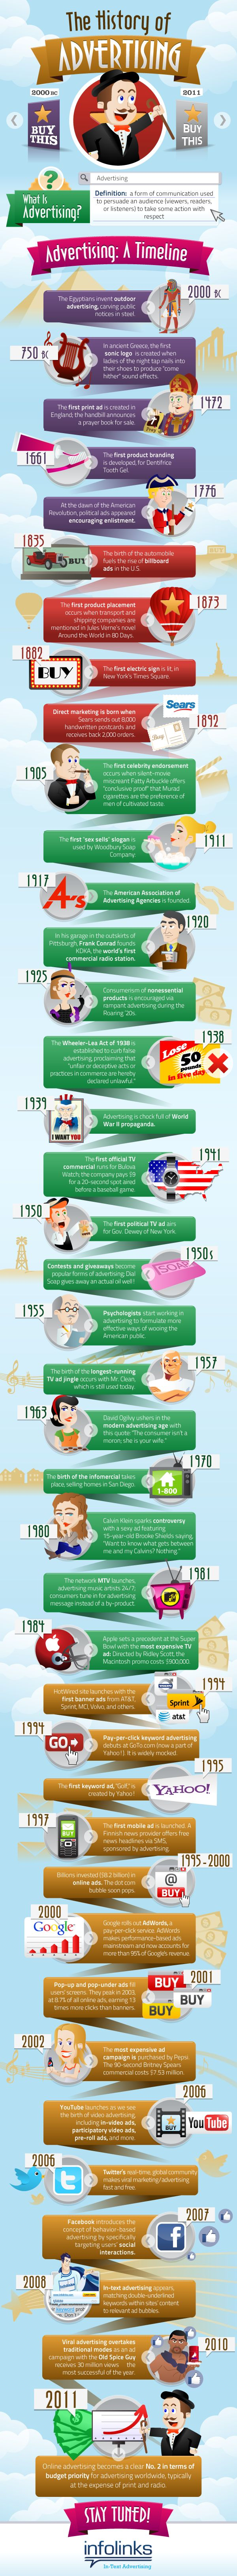 History of Advertising. But man I'm getting sick of infographics. I think Pinterest make make us all sick of them by the end of 2012. They're going to start looking like noise.